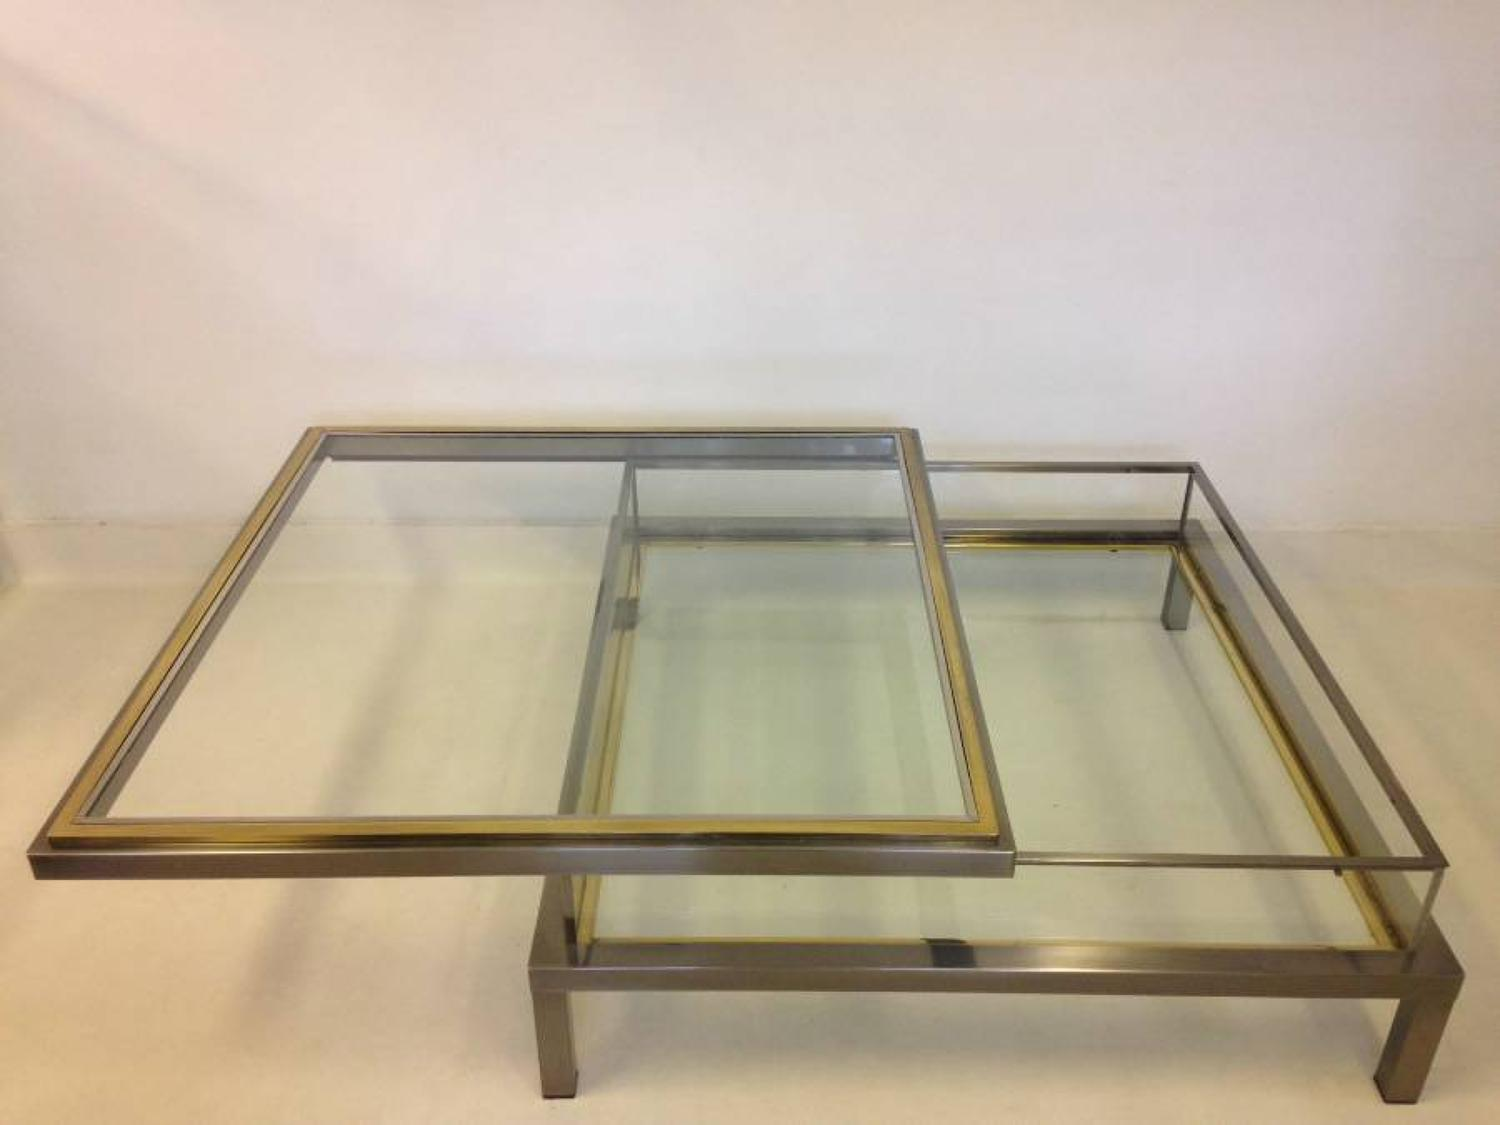 Steel and brass sliding top vitrine table